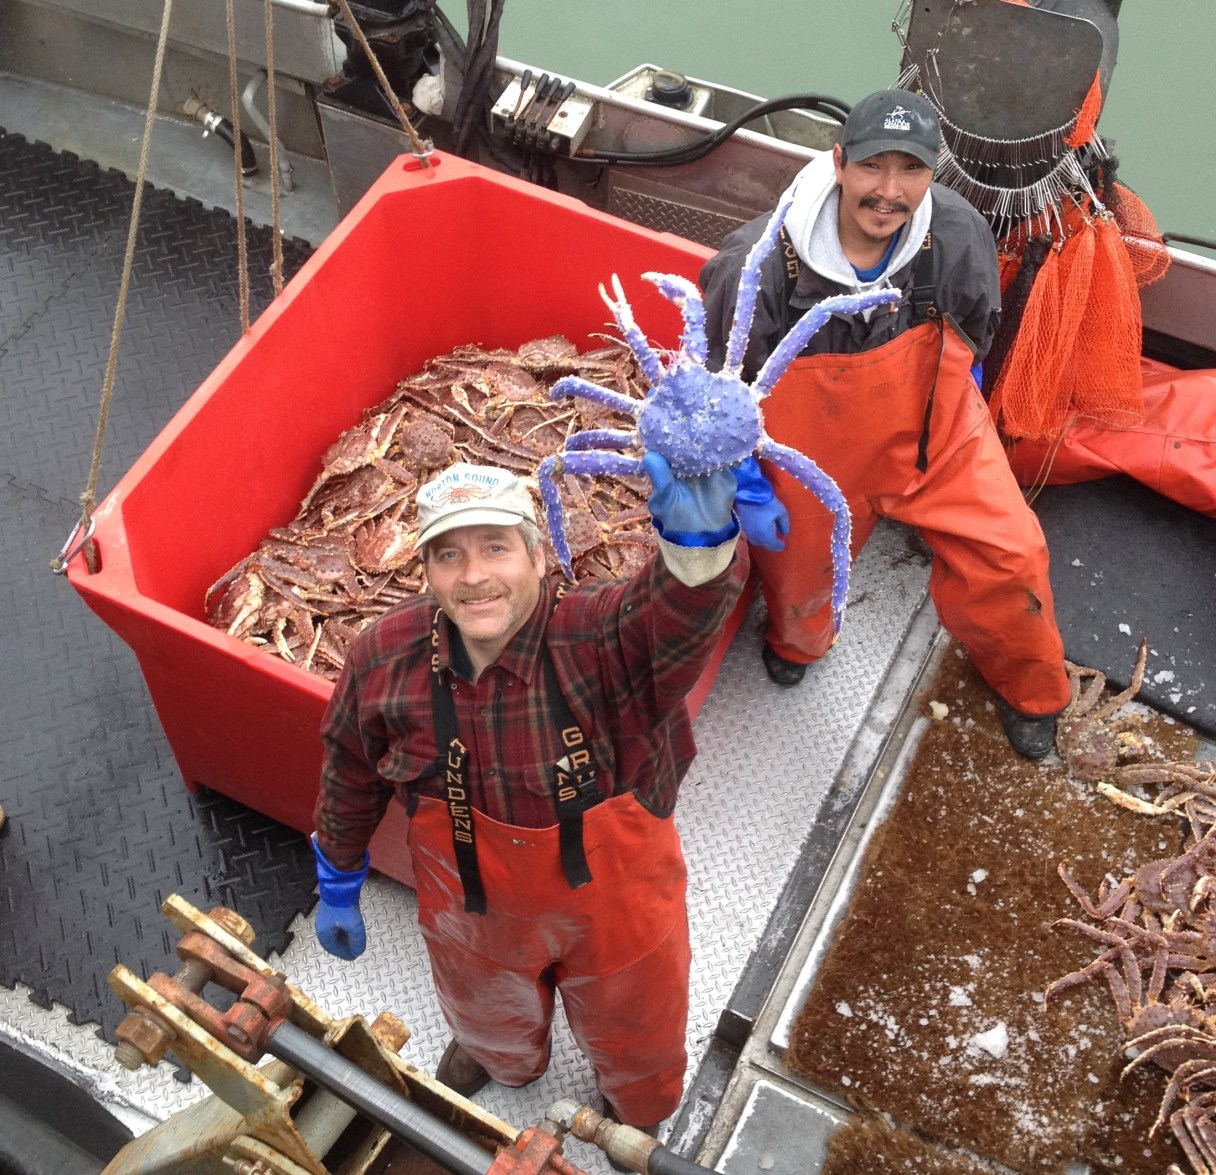 As seen in the Nome Nugget, crab fisherman Frank McFarland holds up a rare blue-colored red king crab that he caught in his commercial crabbing pots, as Frank Kavairlook Jr. looks on. Photo: Scott Kent, ADFG.